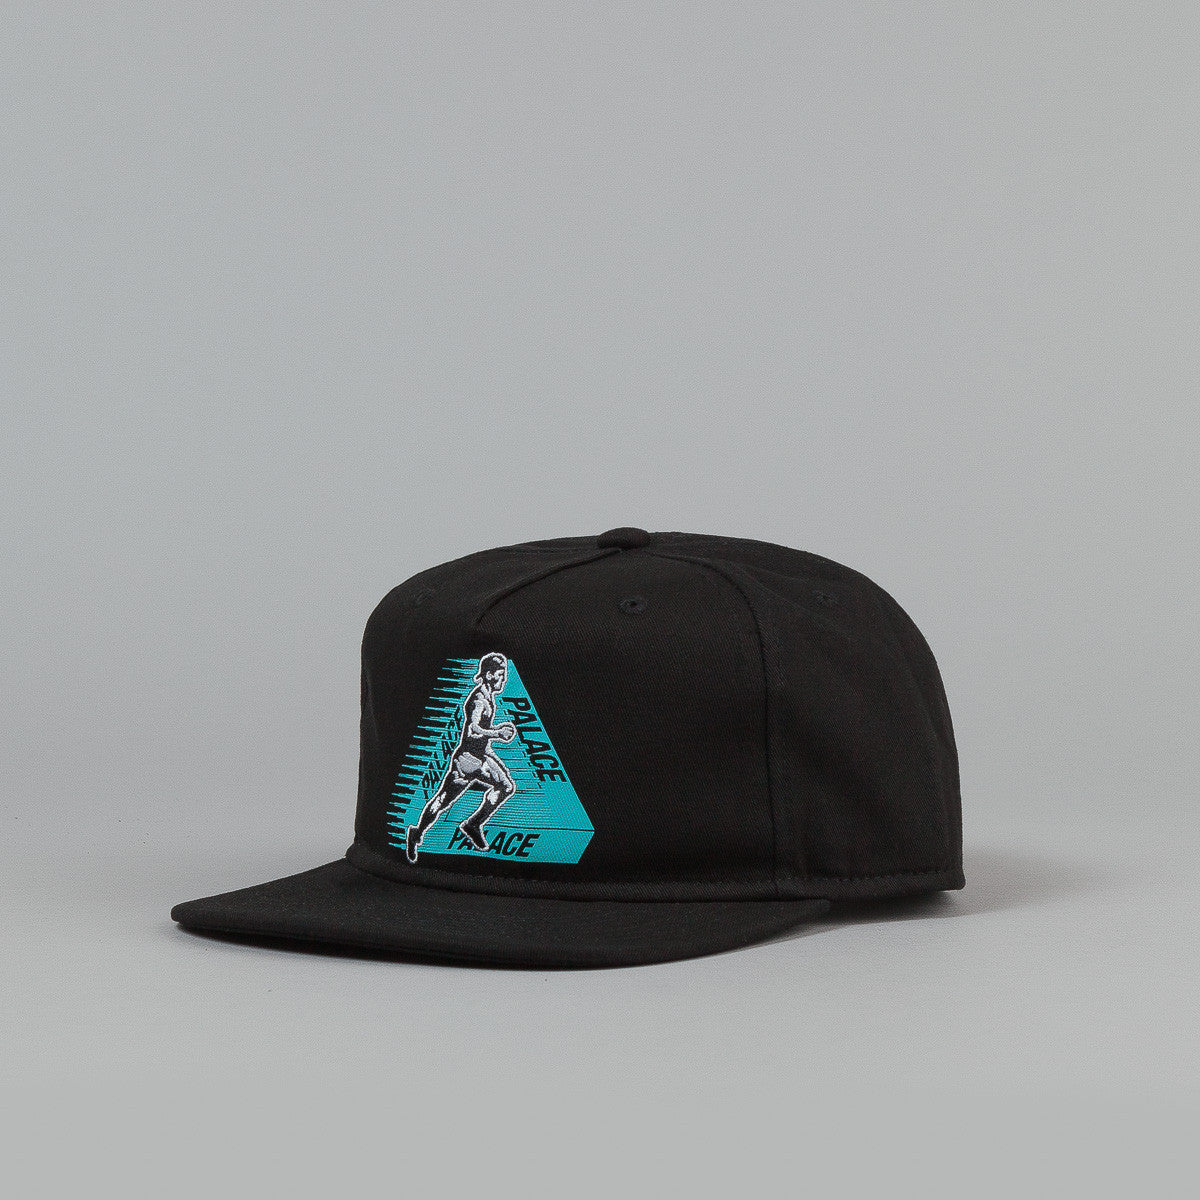 Palace Running Tings Snapback Cap